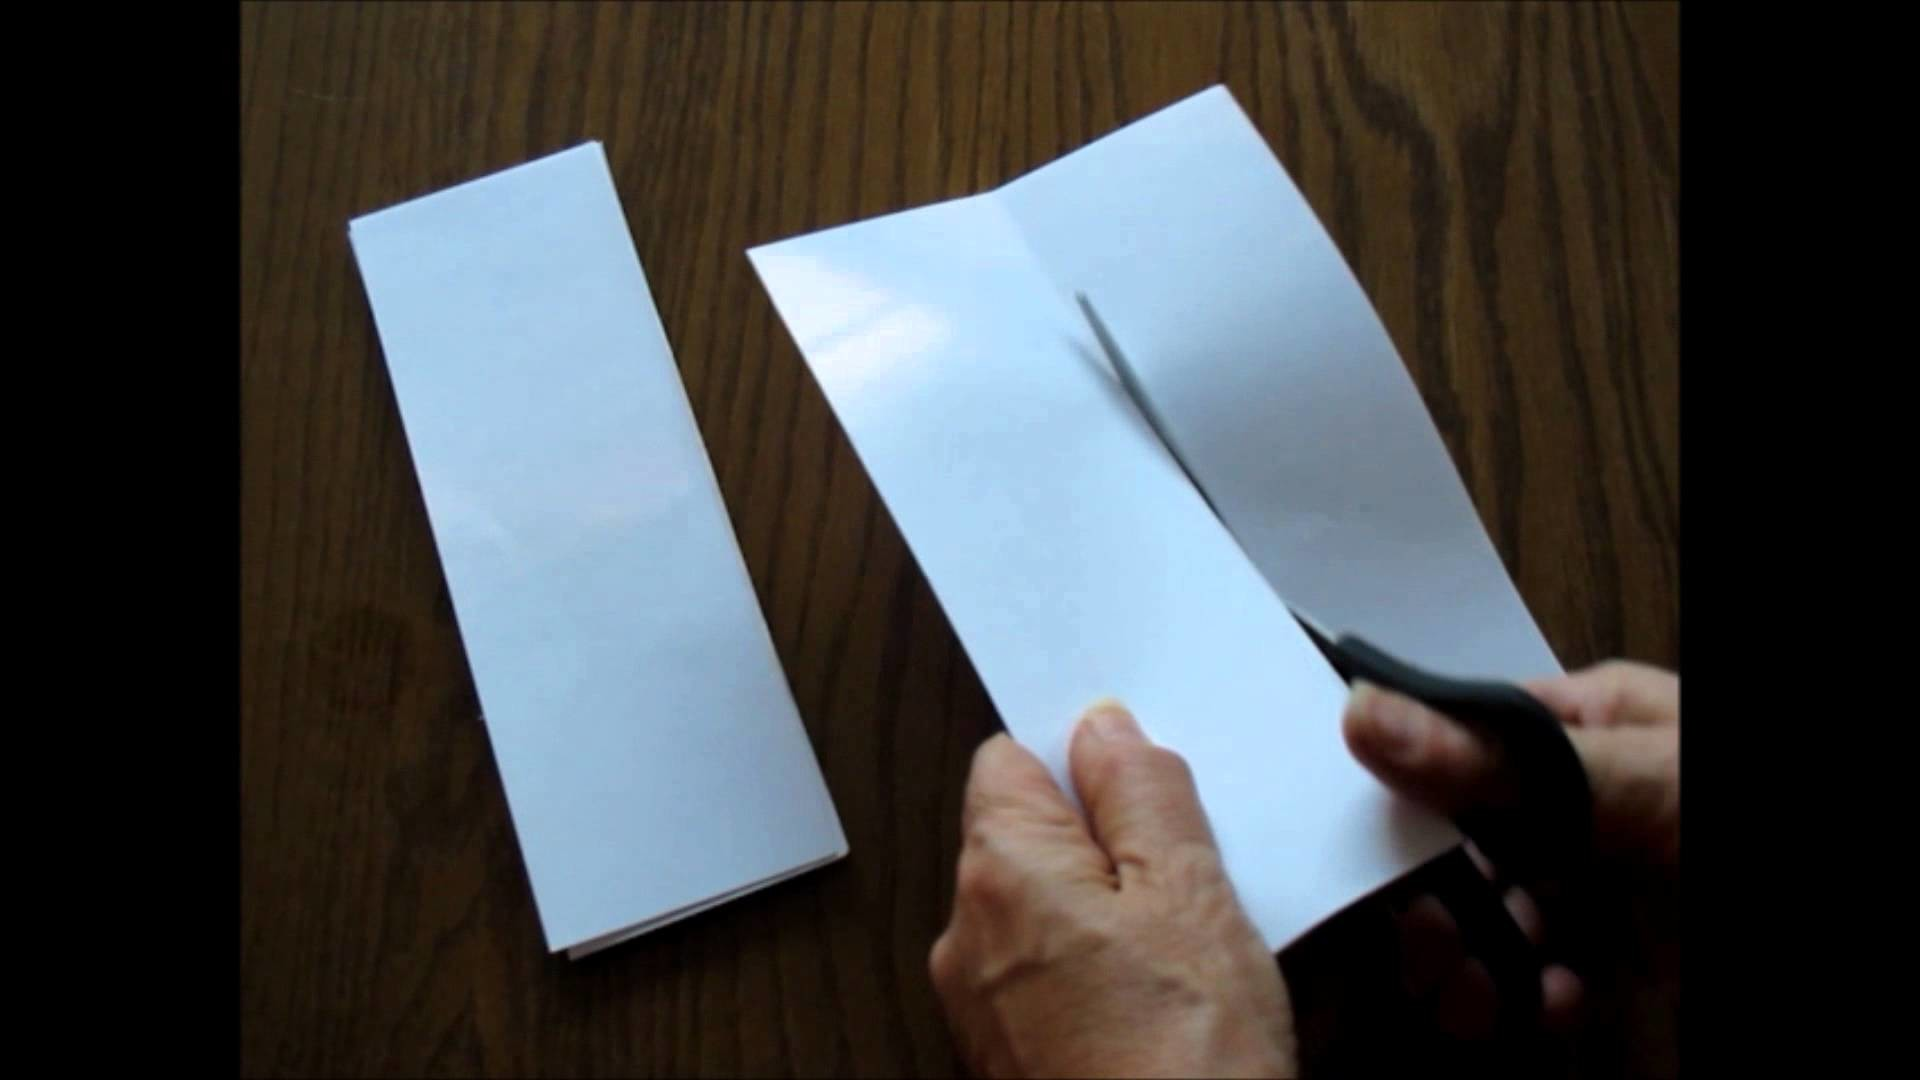 How To Make A Quick and Simple Flip Book